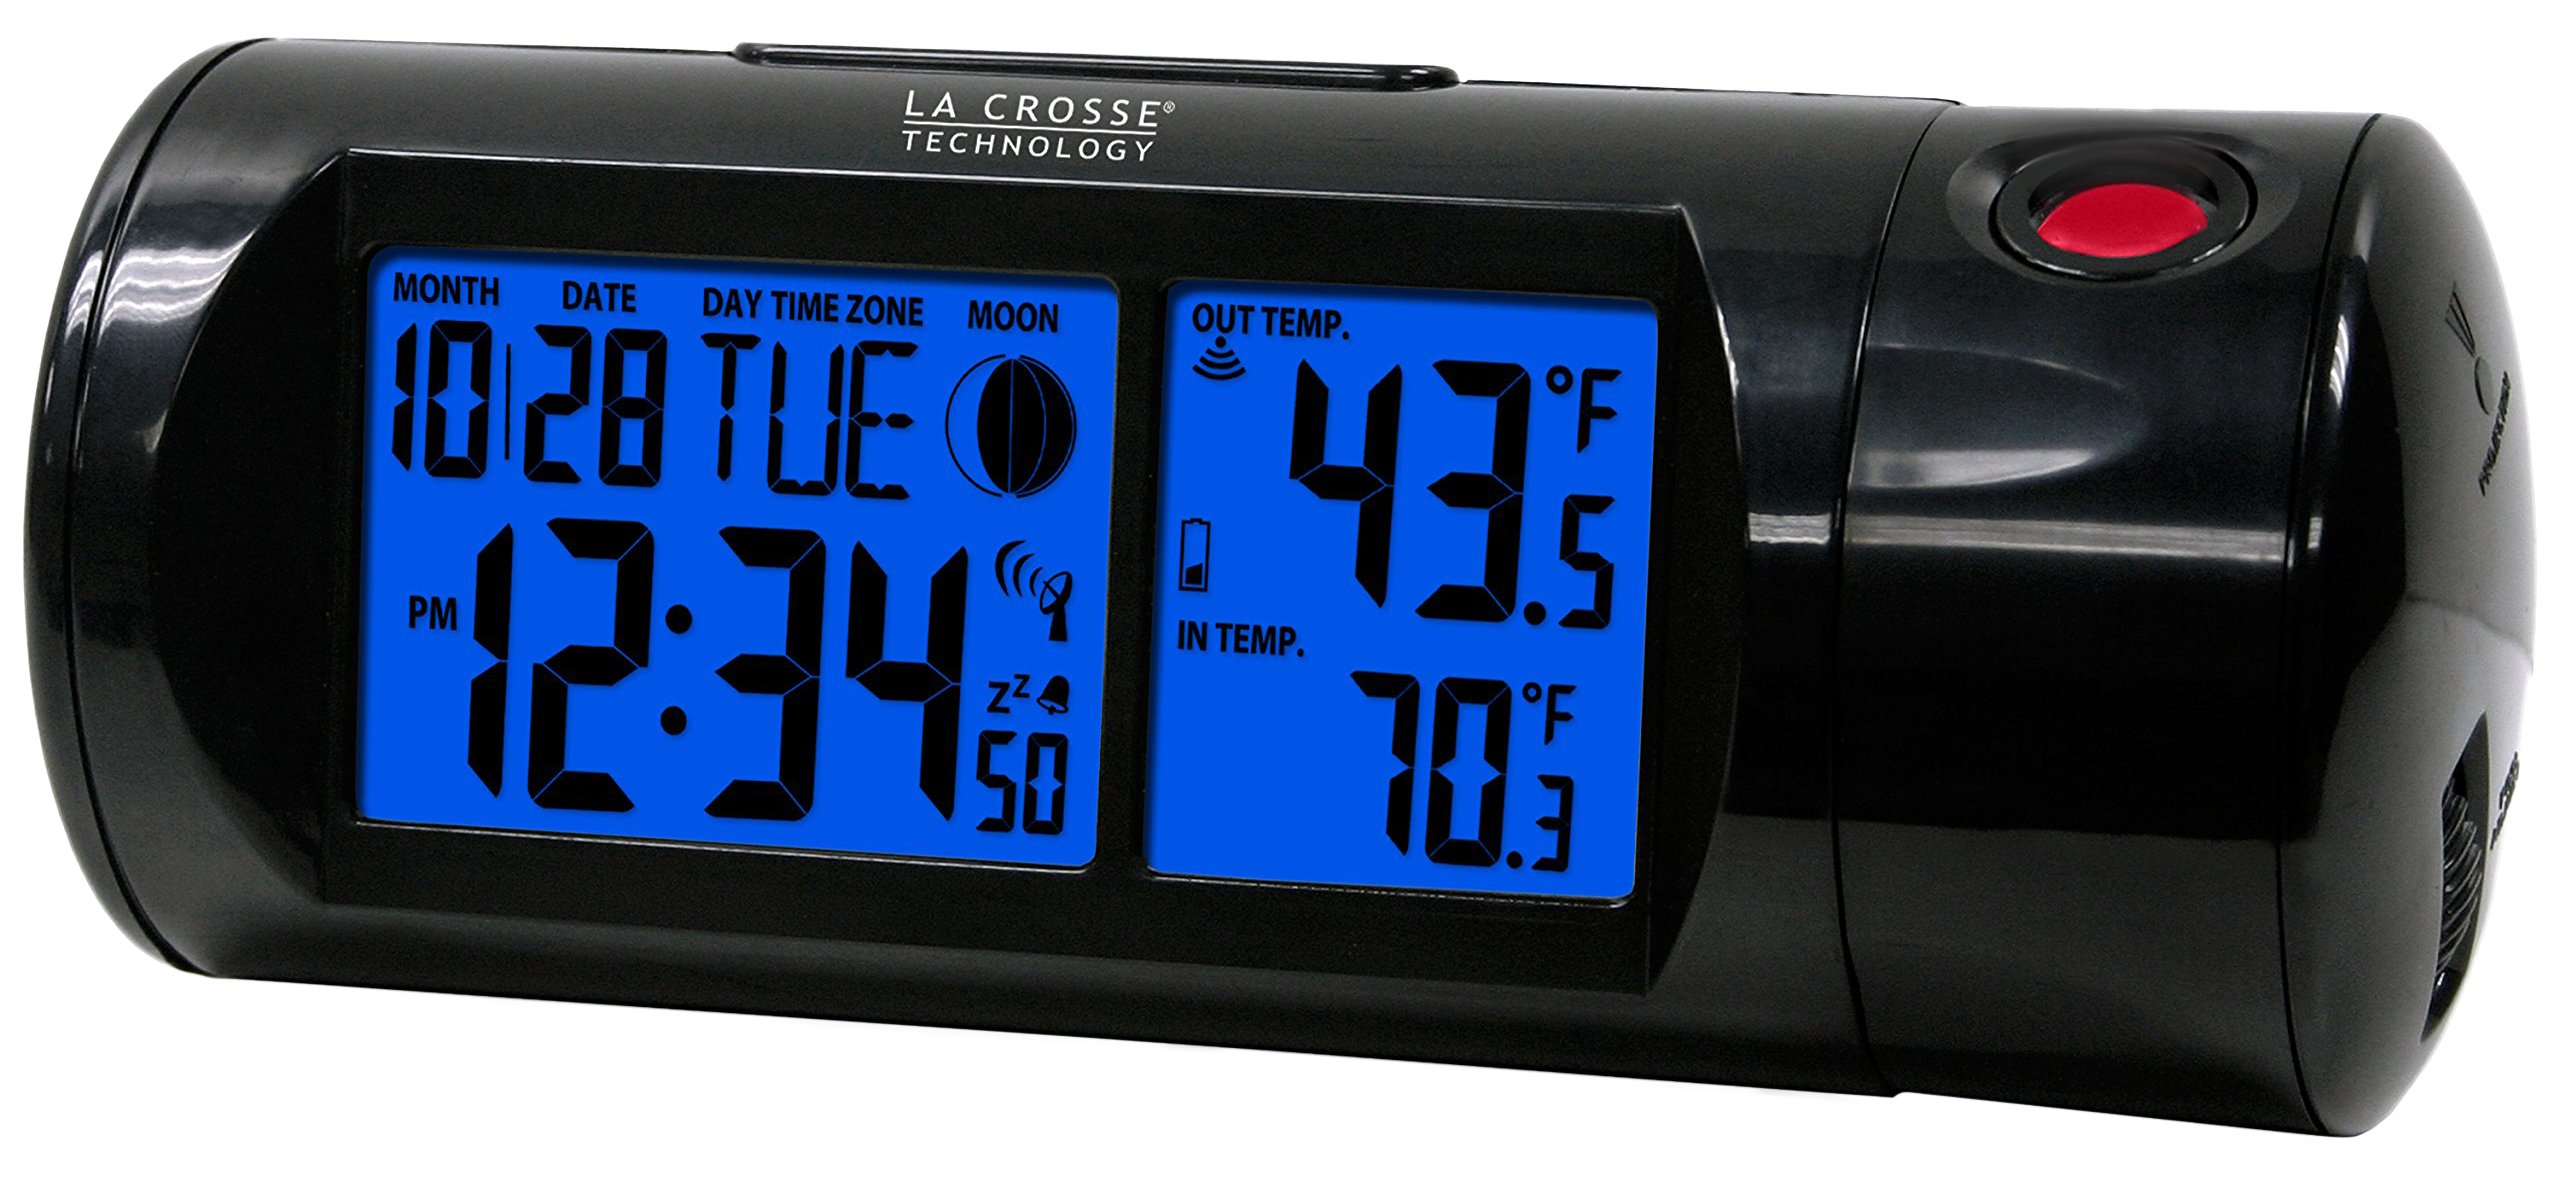 La Crosse Technology 616-143 Projection Alarm Clock with Backlight with In/Out Temp by La Crosse Technology